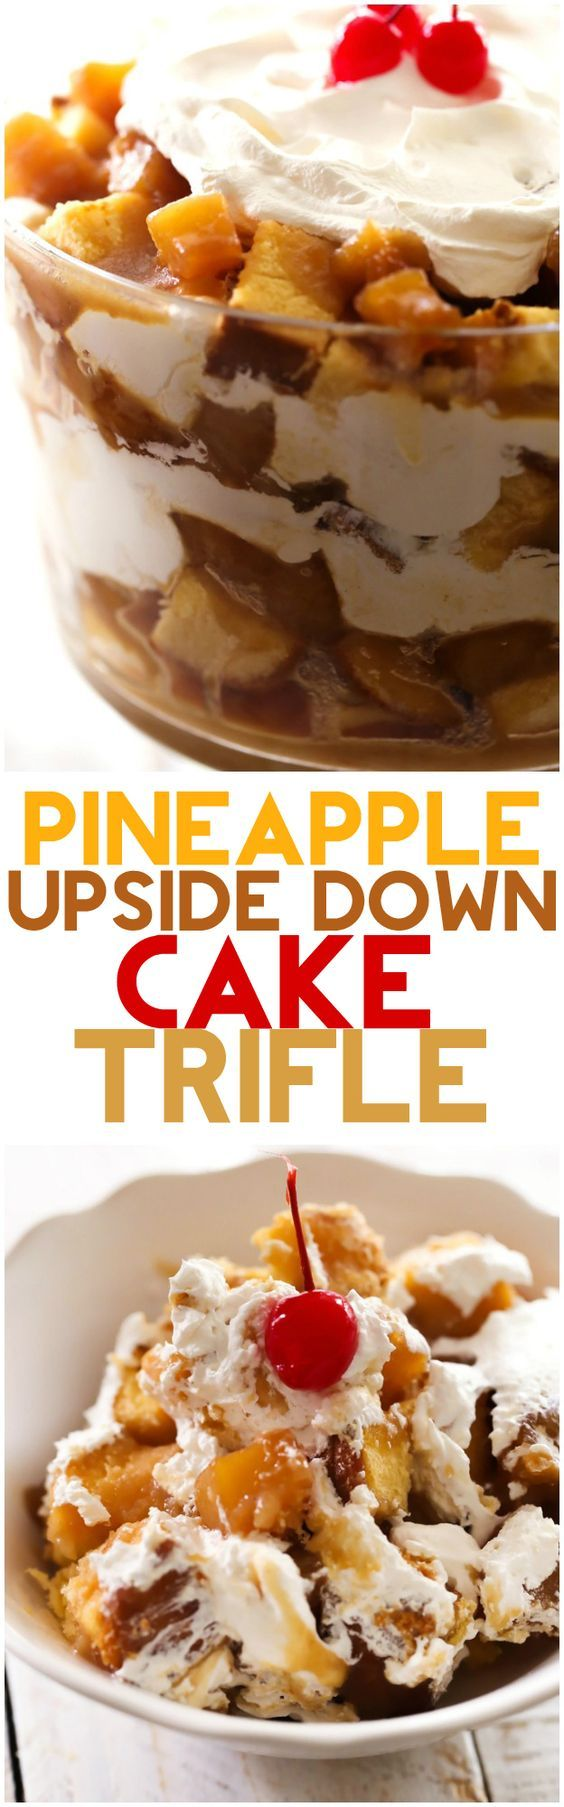 Pineapple Upside Down Cake Trifle... This recipe is INCREDIBLE! Layers of cake, glazed pineapple mixture and cream... it is sure to be a hit wherever you serve it!